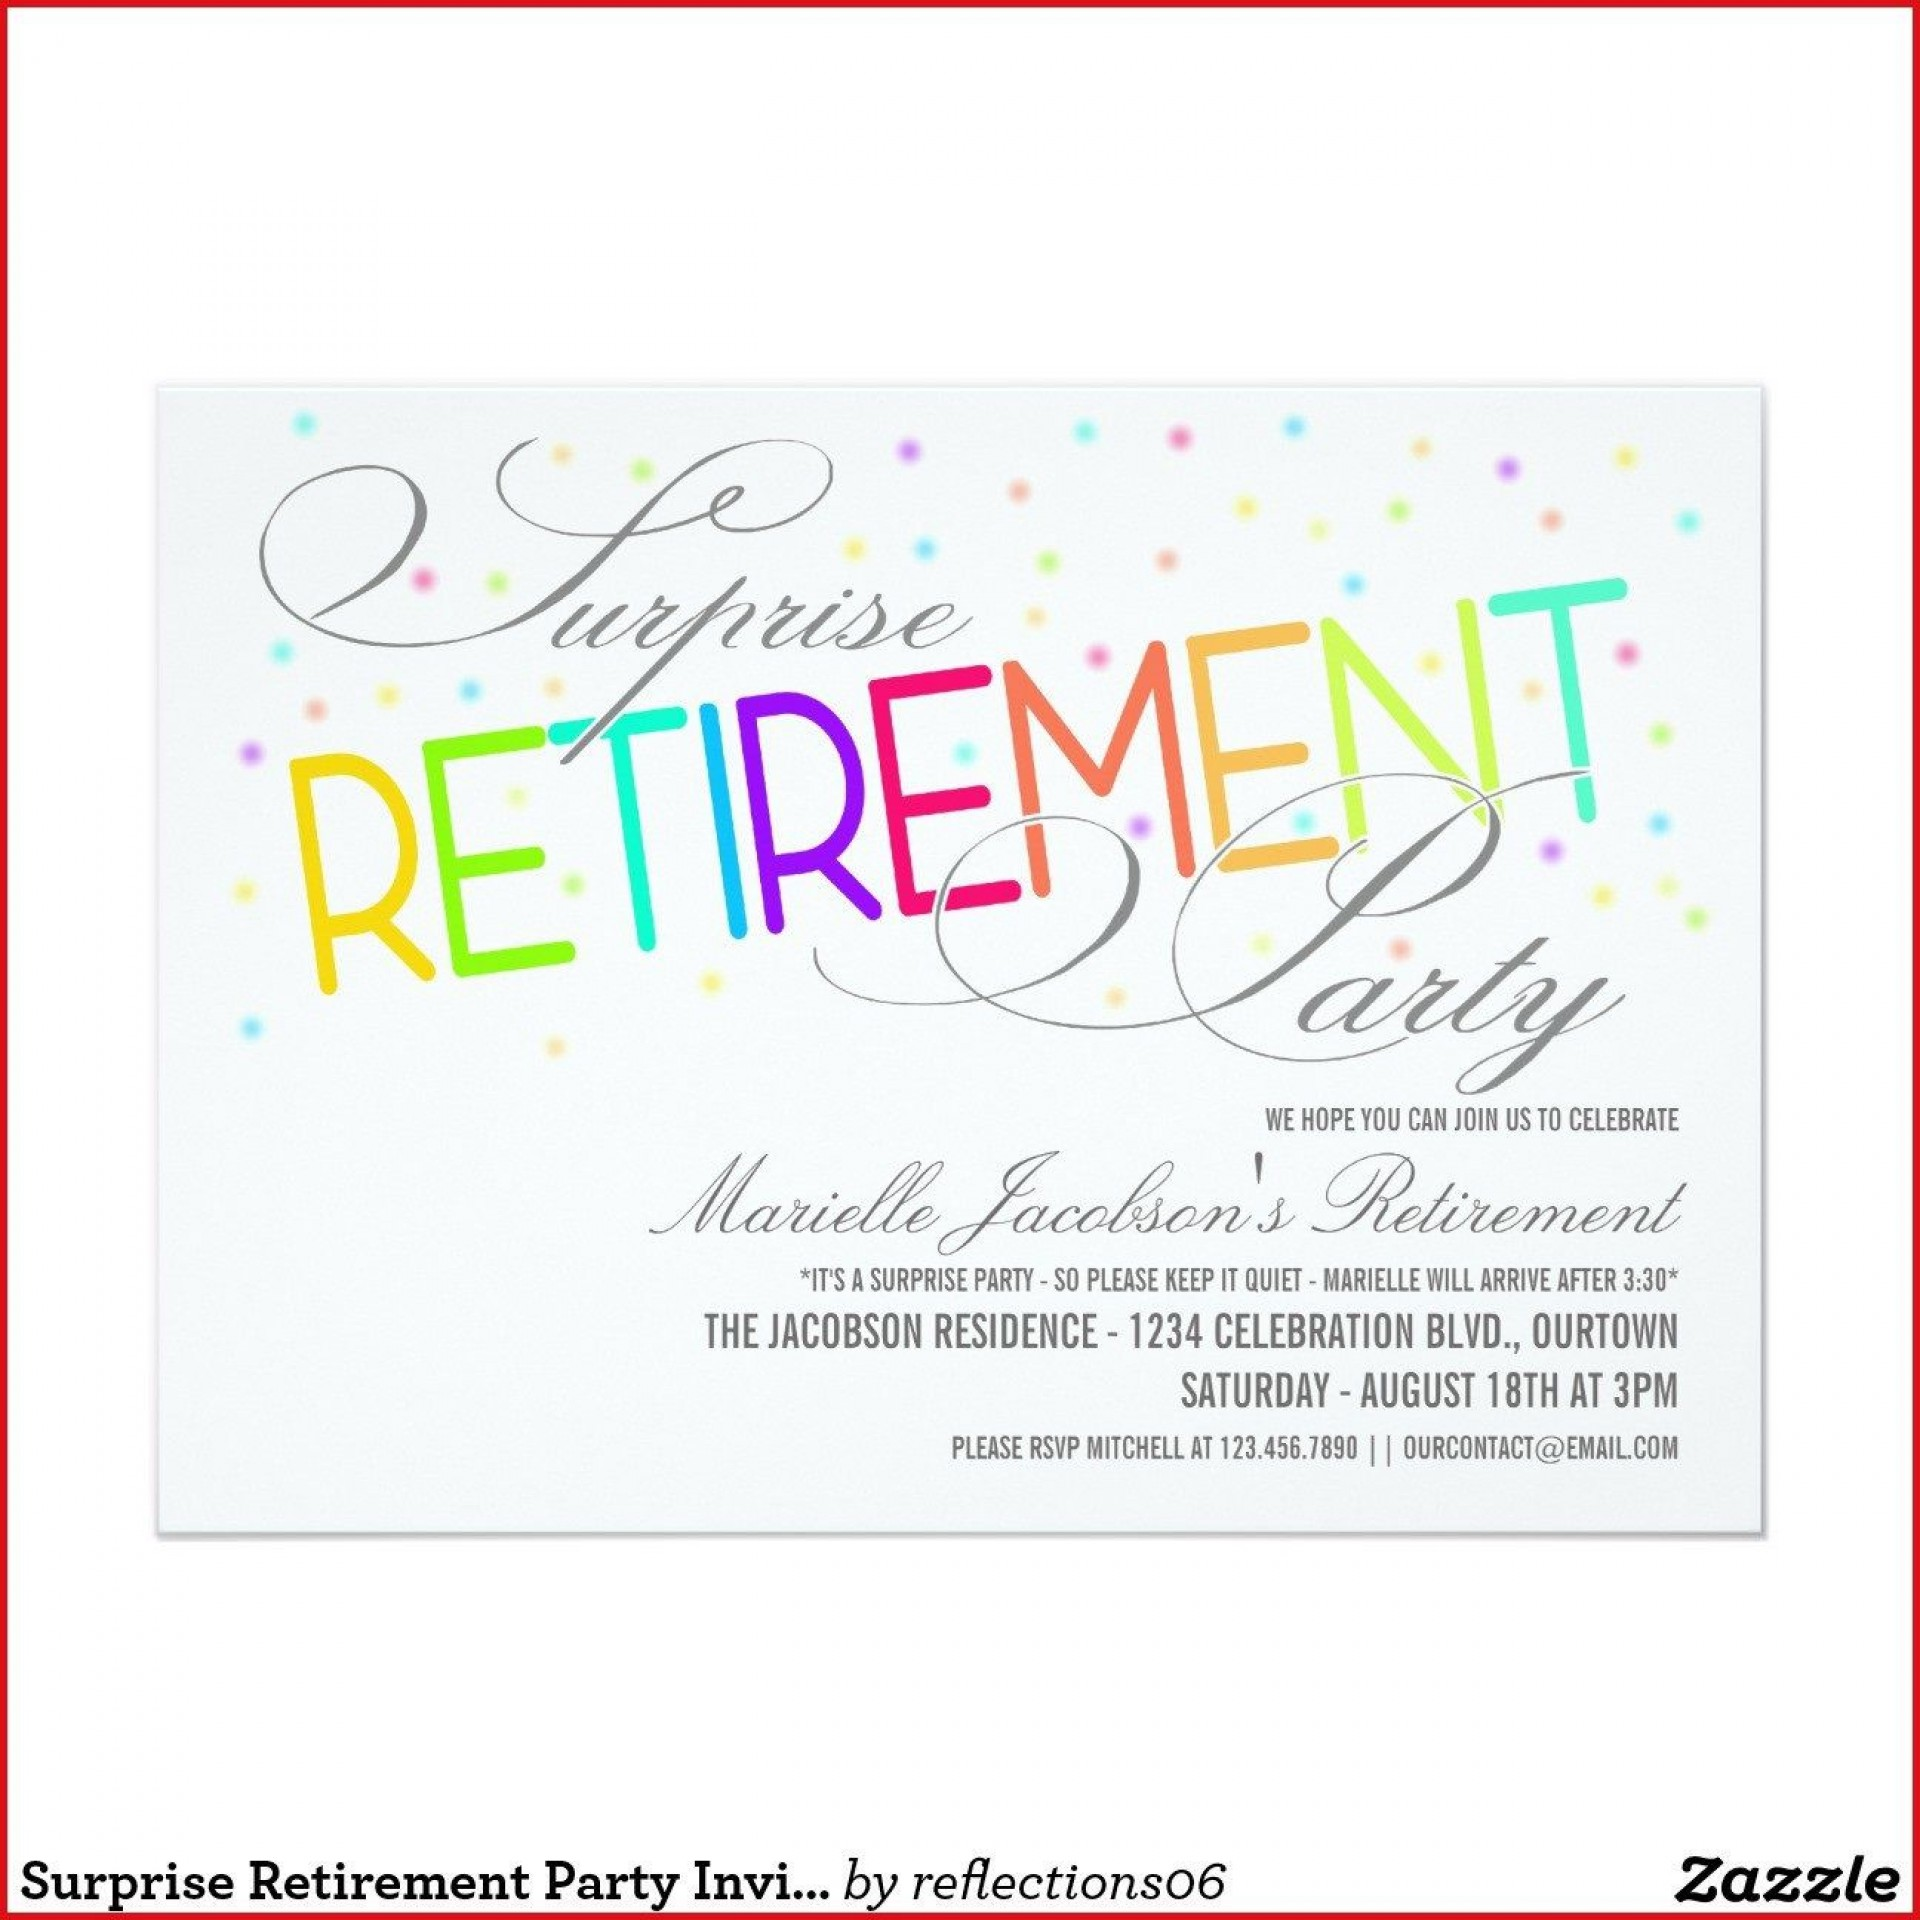 009 Stirring Retirement Party Invitation Template Image  Templates For Free Nurse M Word1920